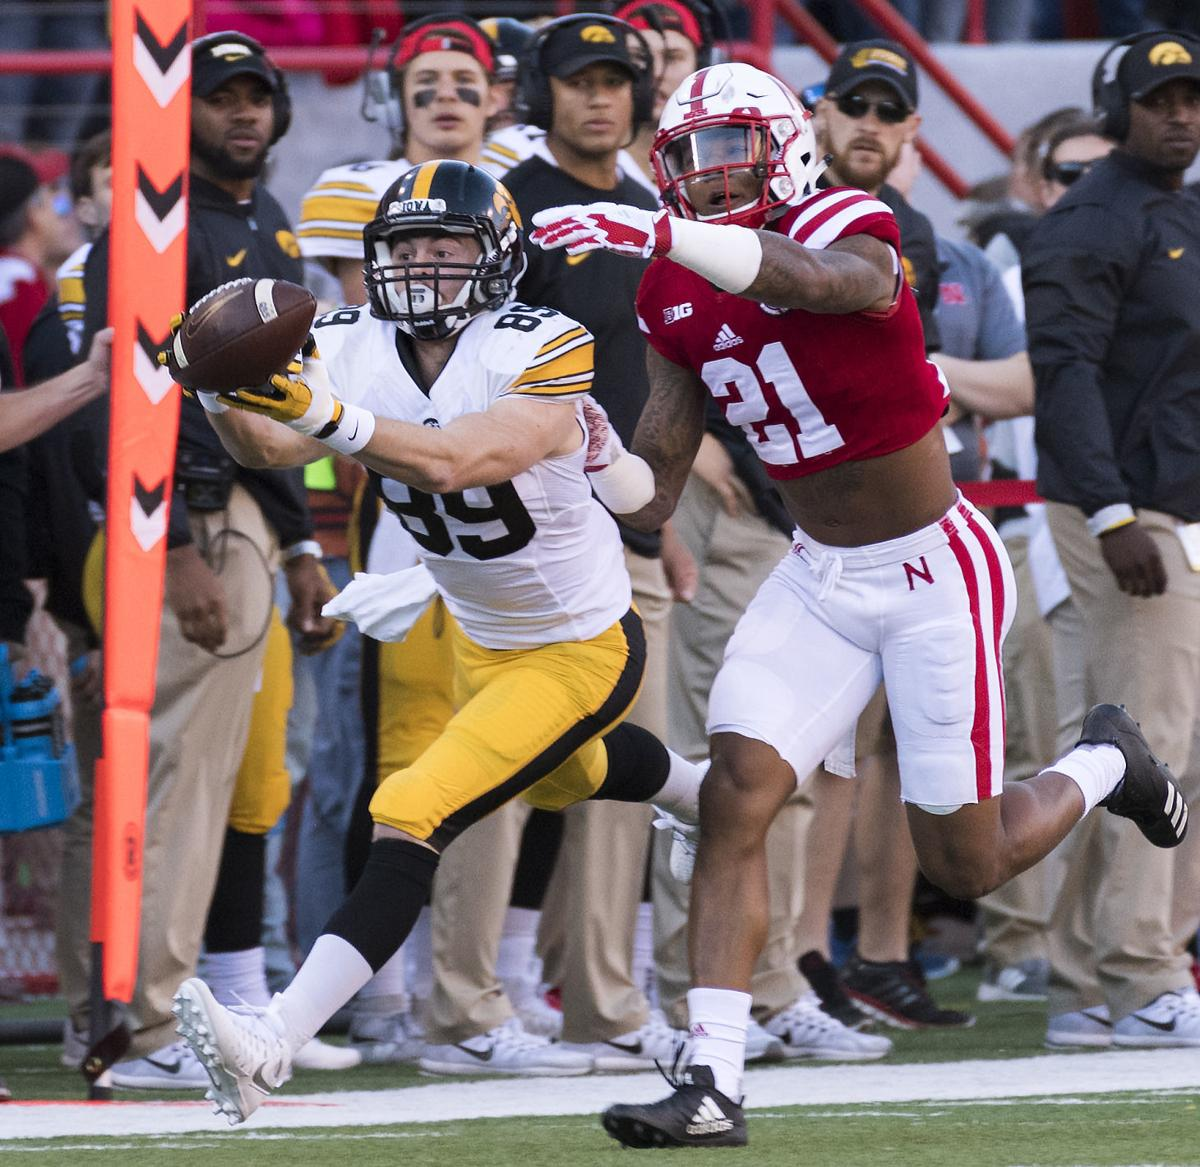 Nebraska vs. Iowa, 11/24/17